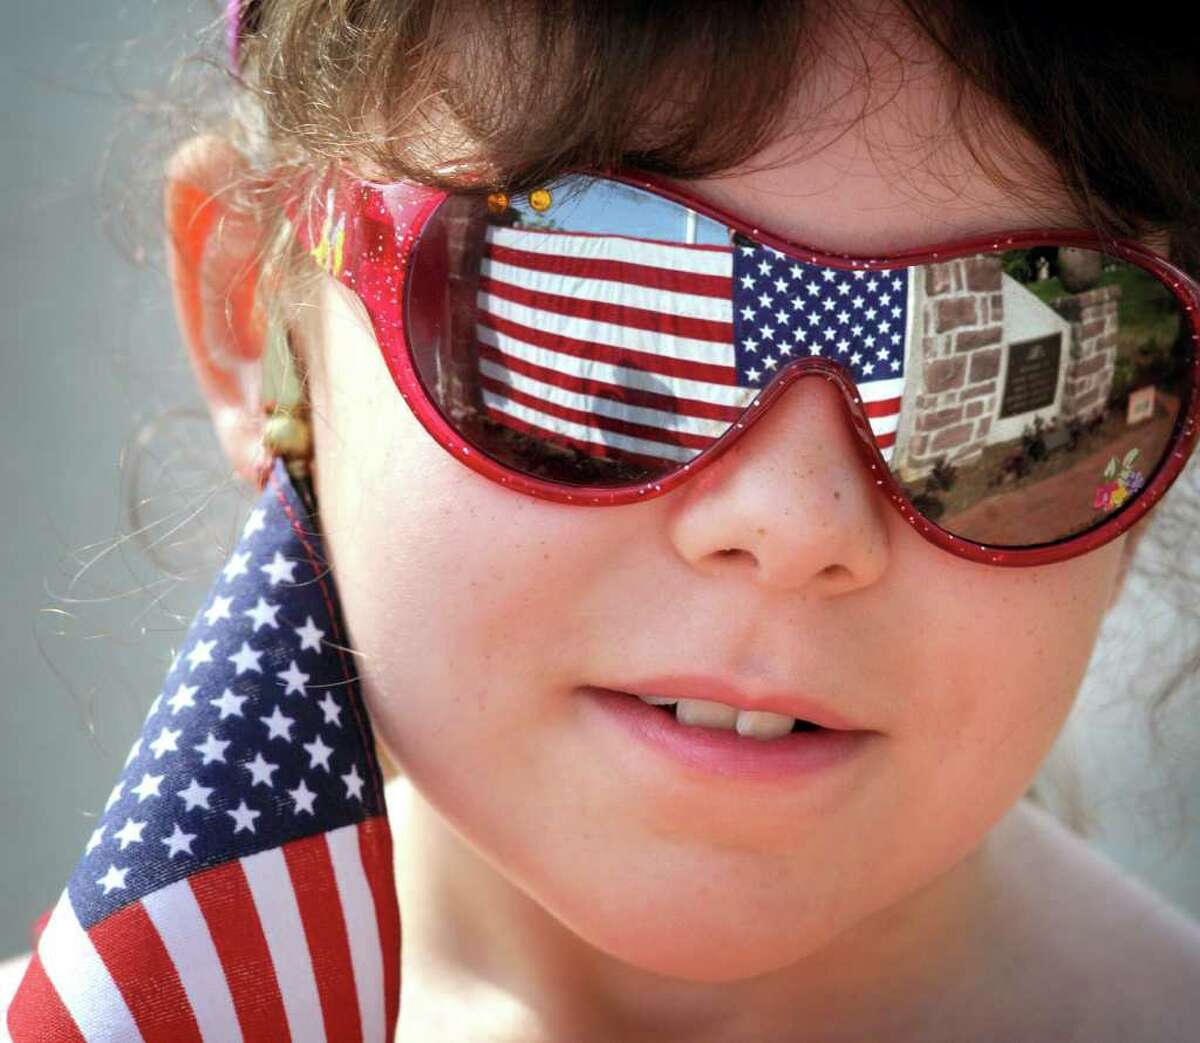 Molly Fasnacht,7, from Schoeneck, Pa. attends a Memorial Day service on Monday. Americans from Washington to California marked Memorial Day with parades, barbecues and somber moments of reflection.